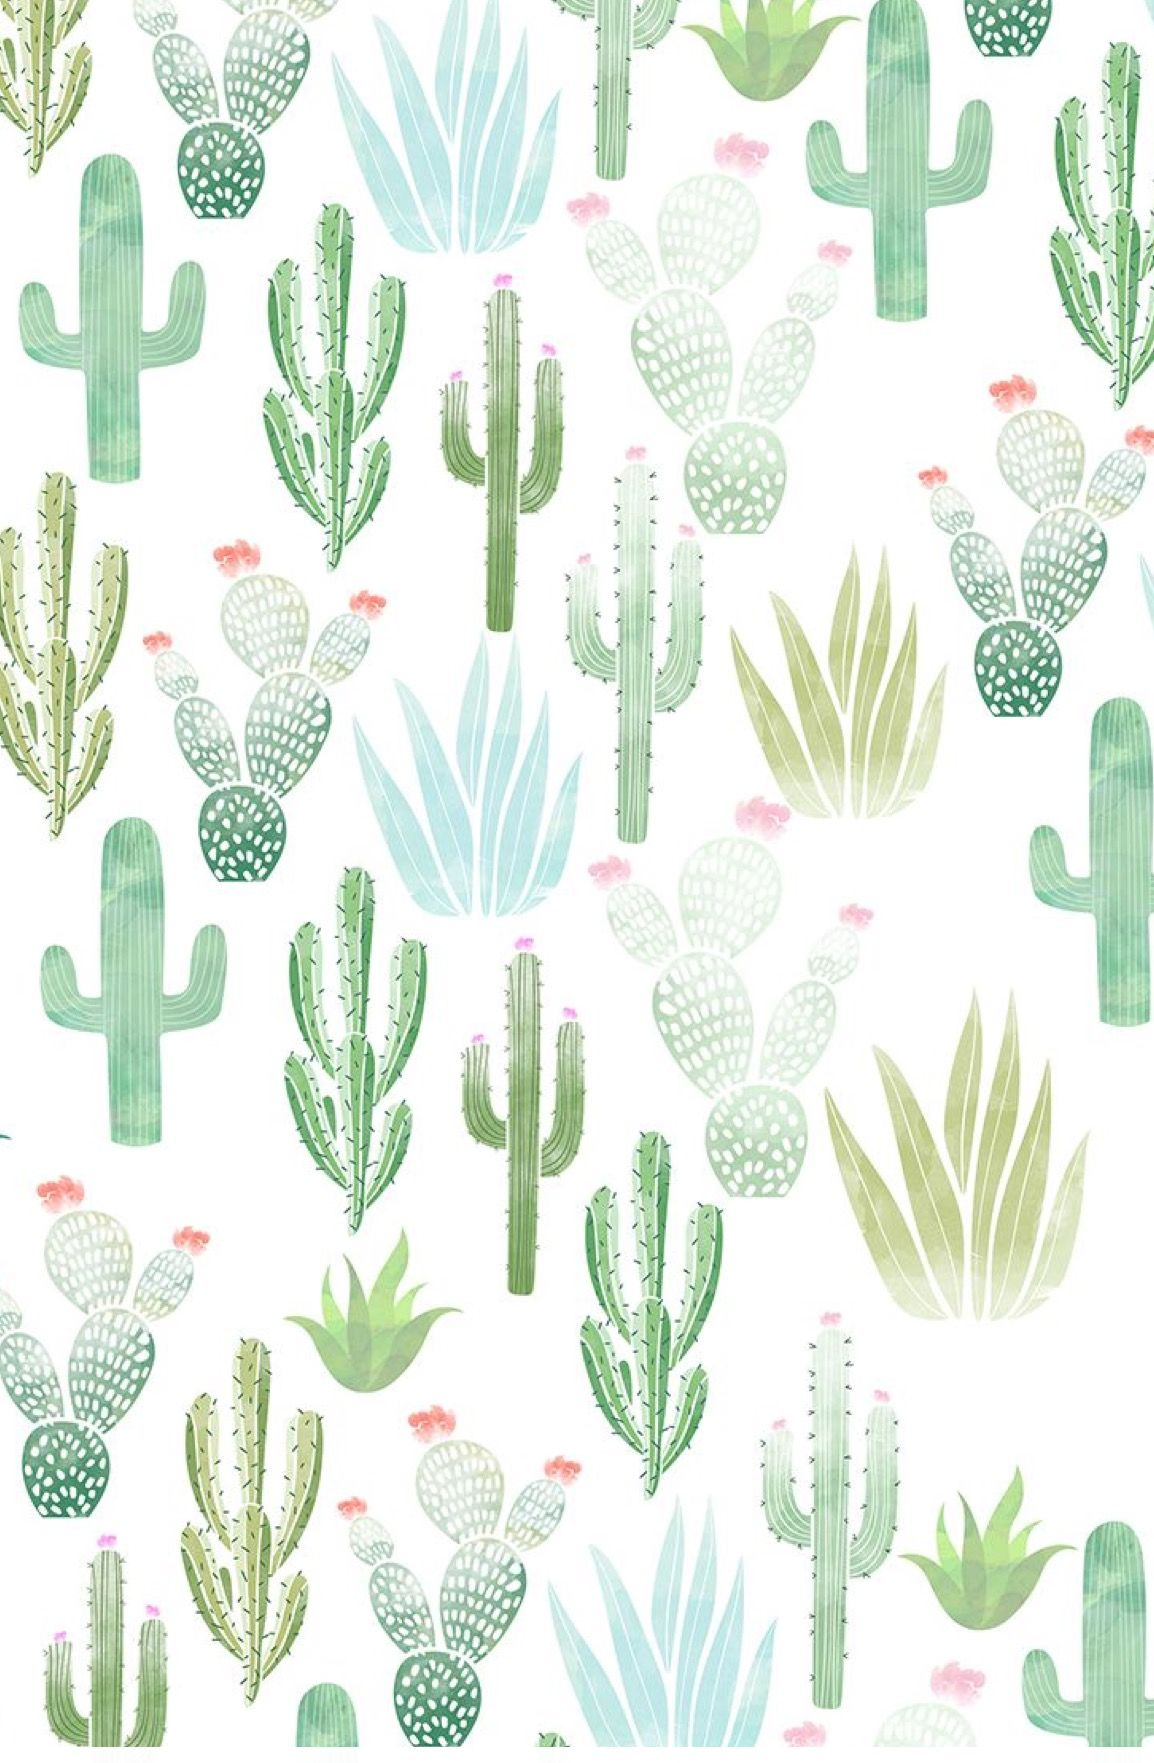 Cactus Background Wallpaper Nawpic